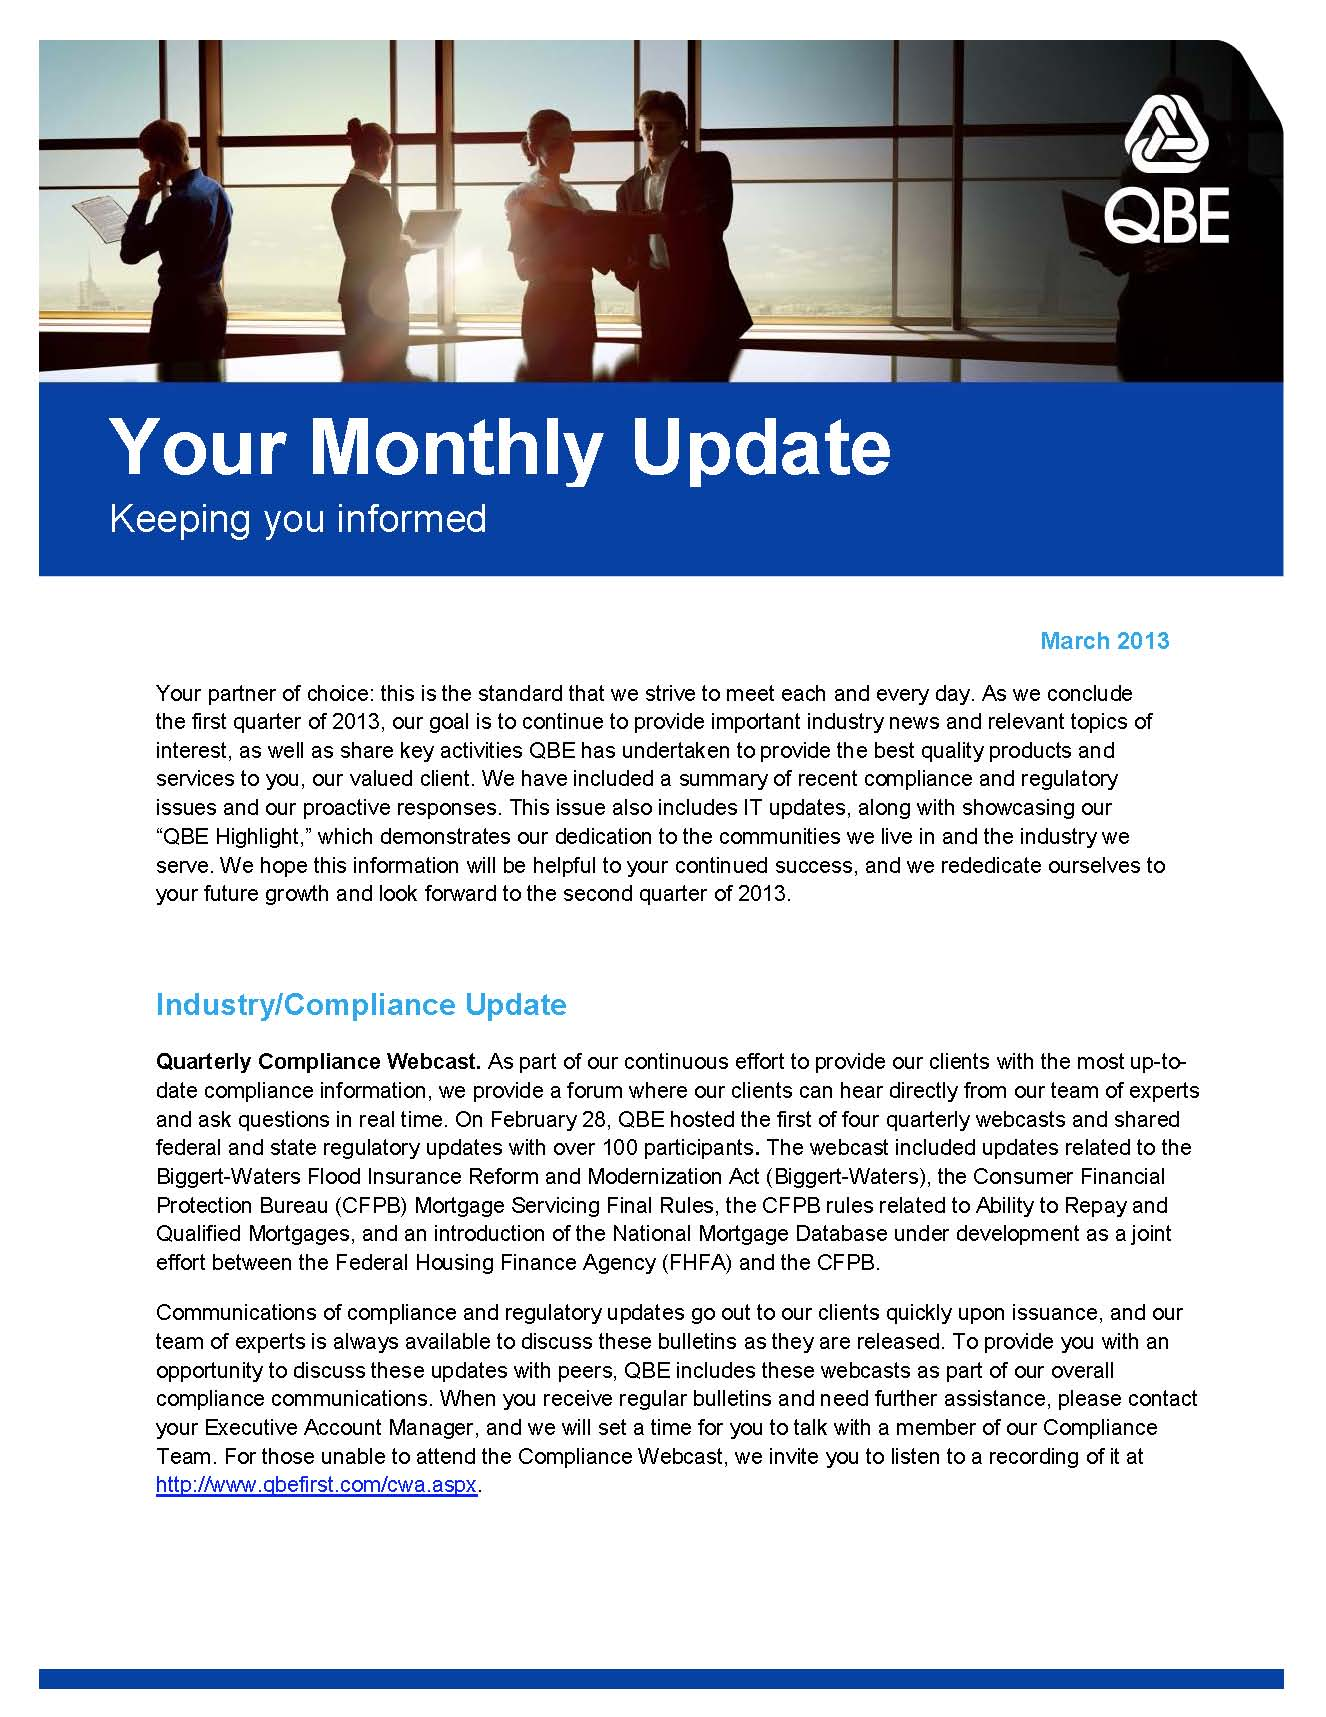 NL-03-13 Your Monthly Update Newsletter_MARCH_Final_Page_1.jpg